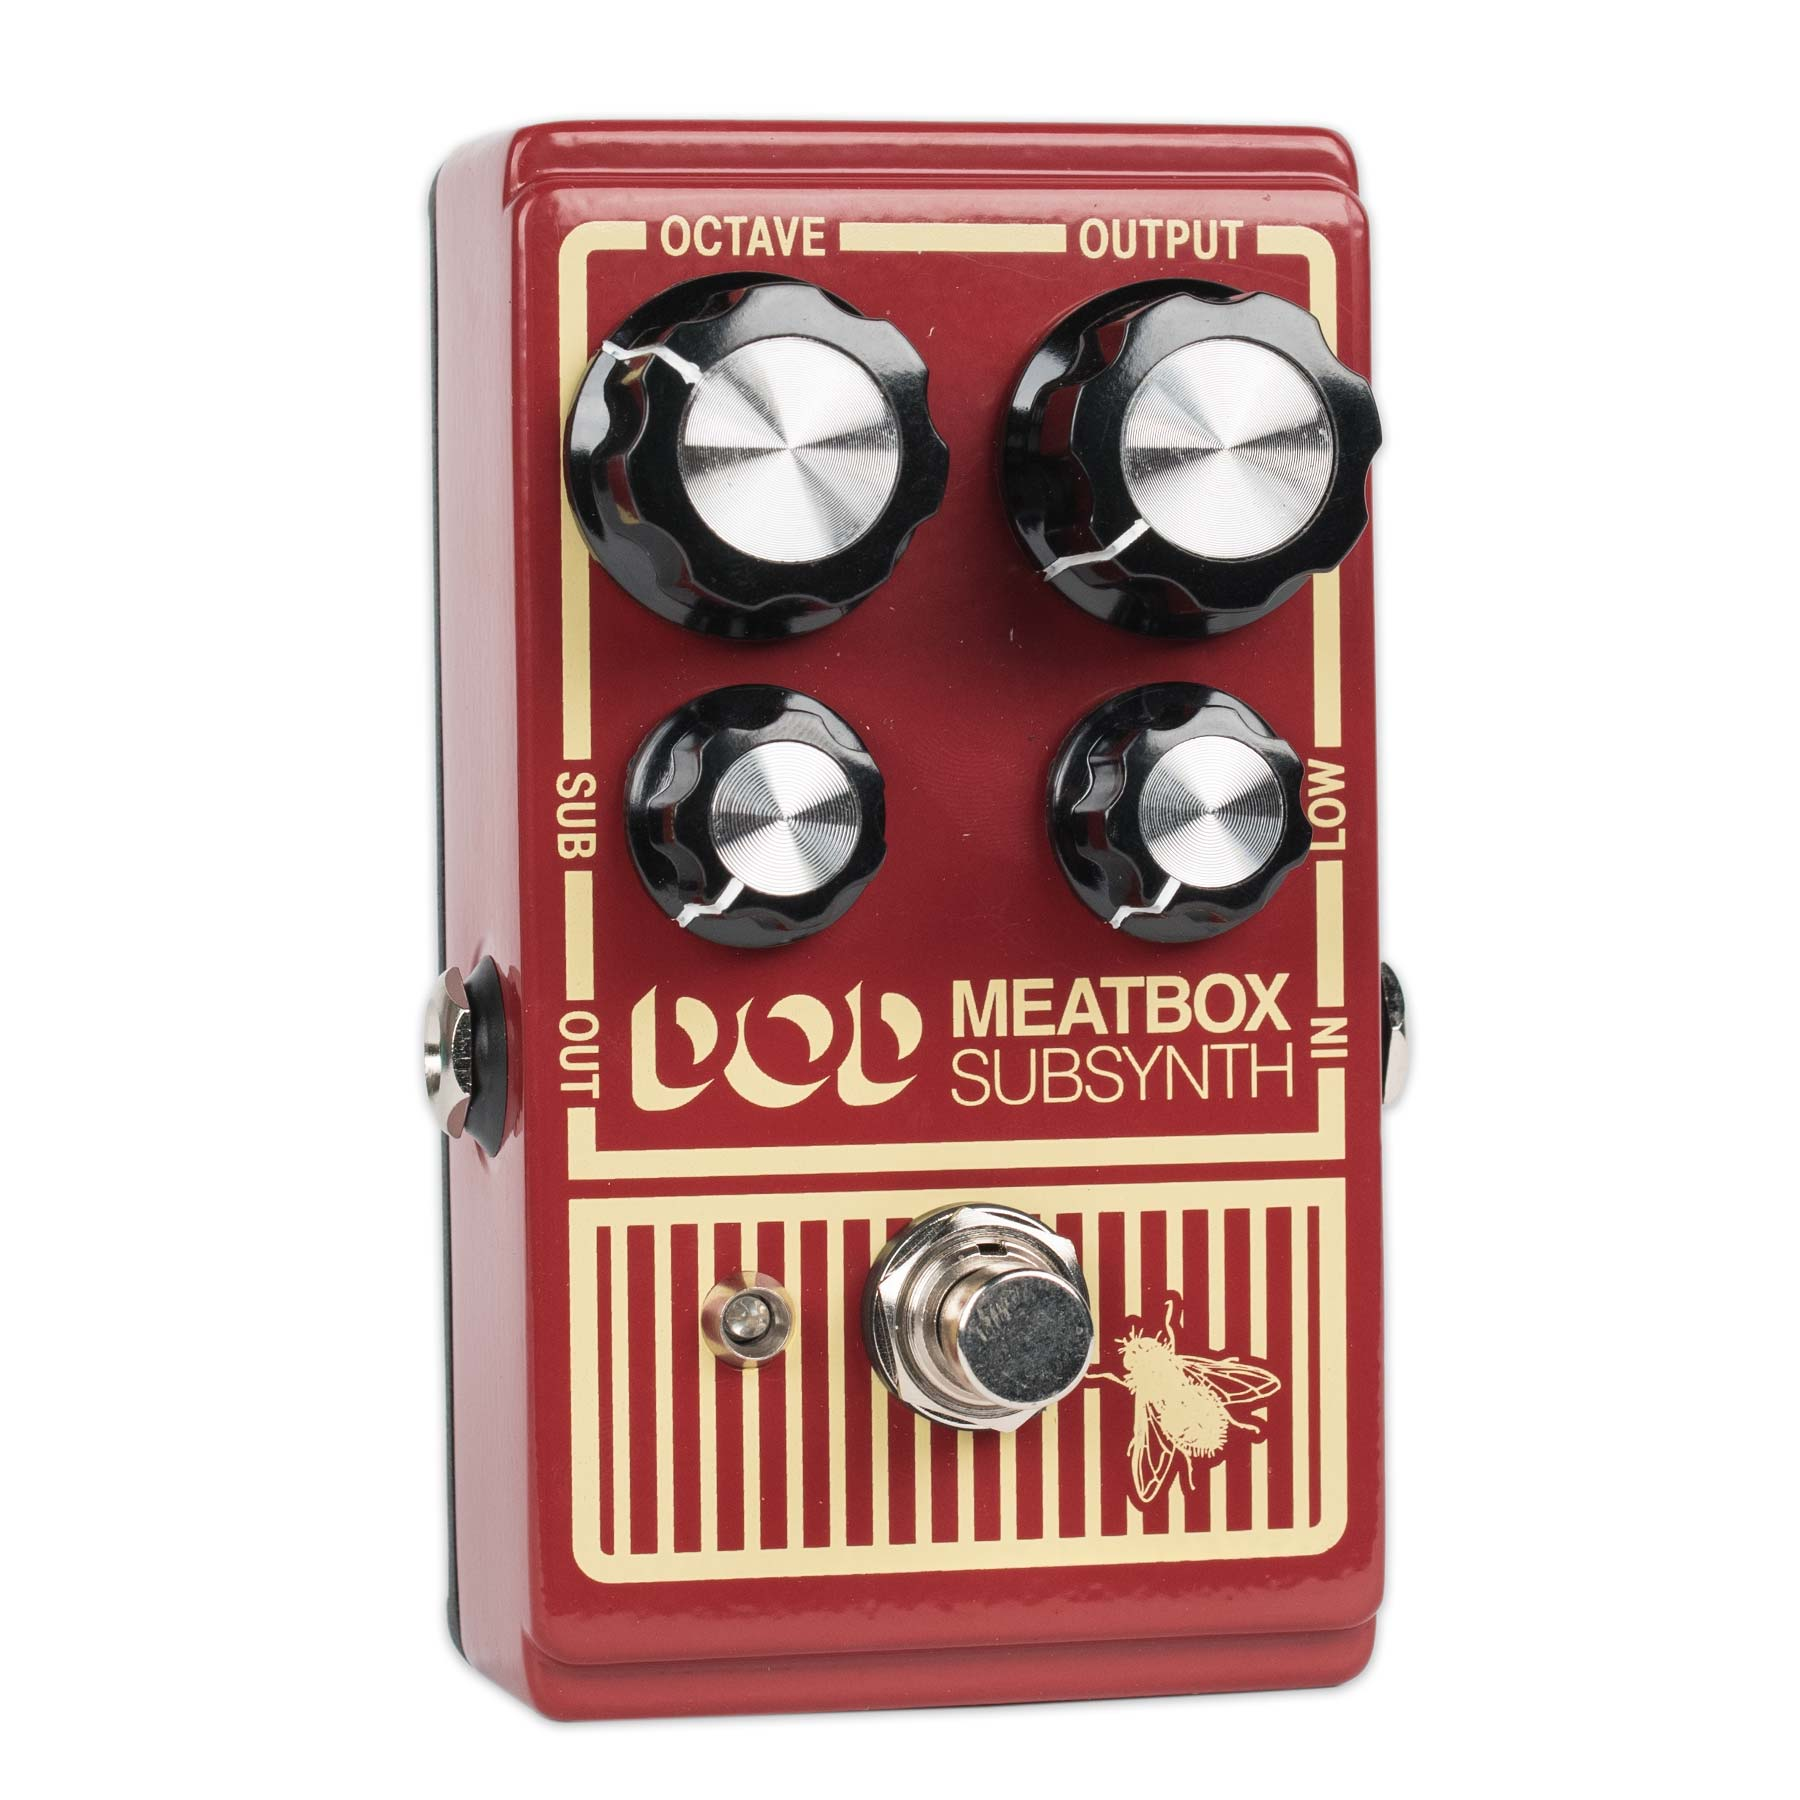 DOD MEATBOX SUB-SYNTH PEDAL